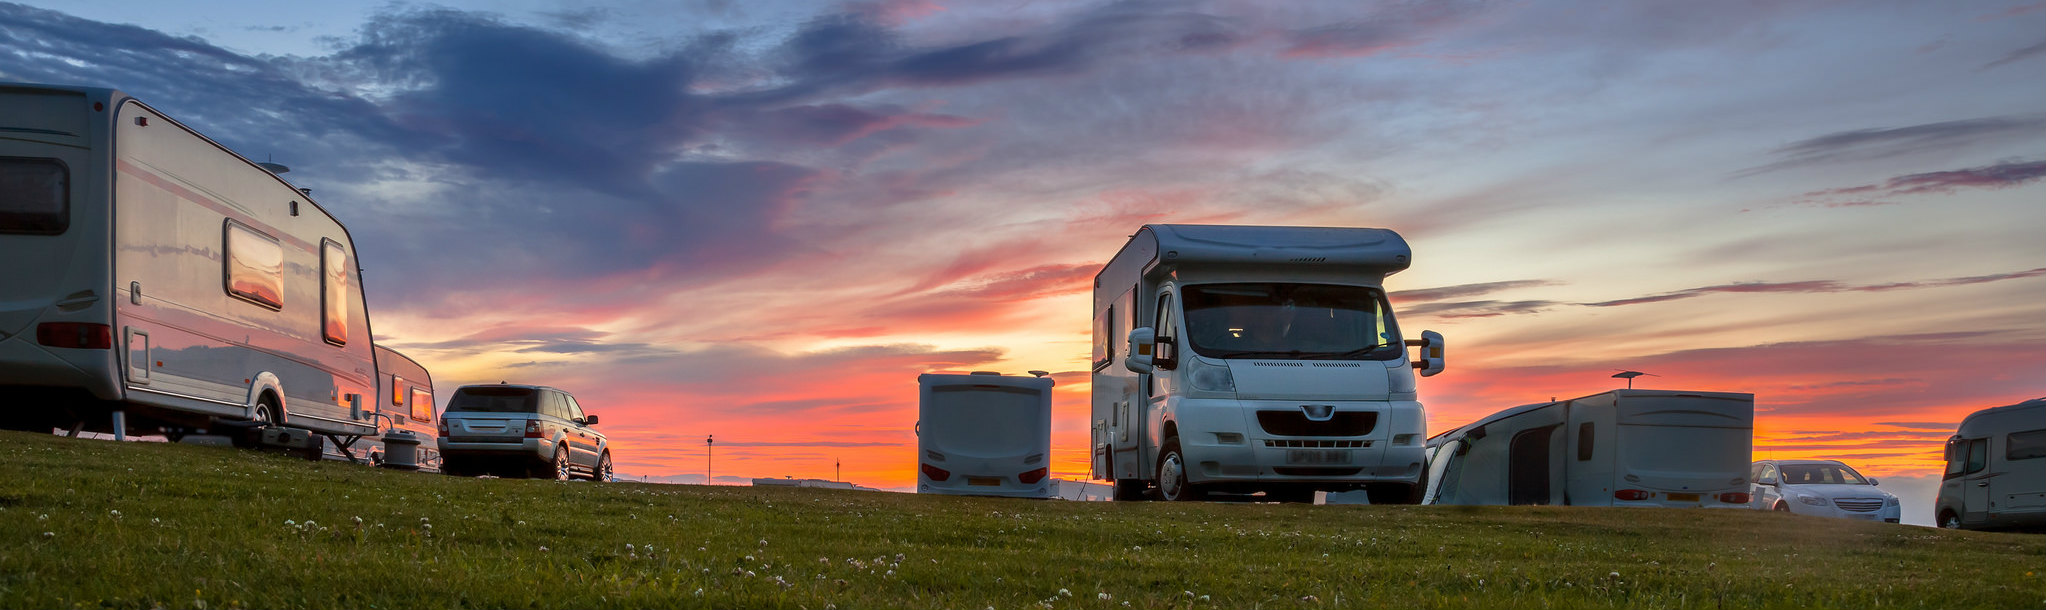 RV and motorhome rentals parked on a grassy area at dawn